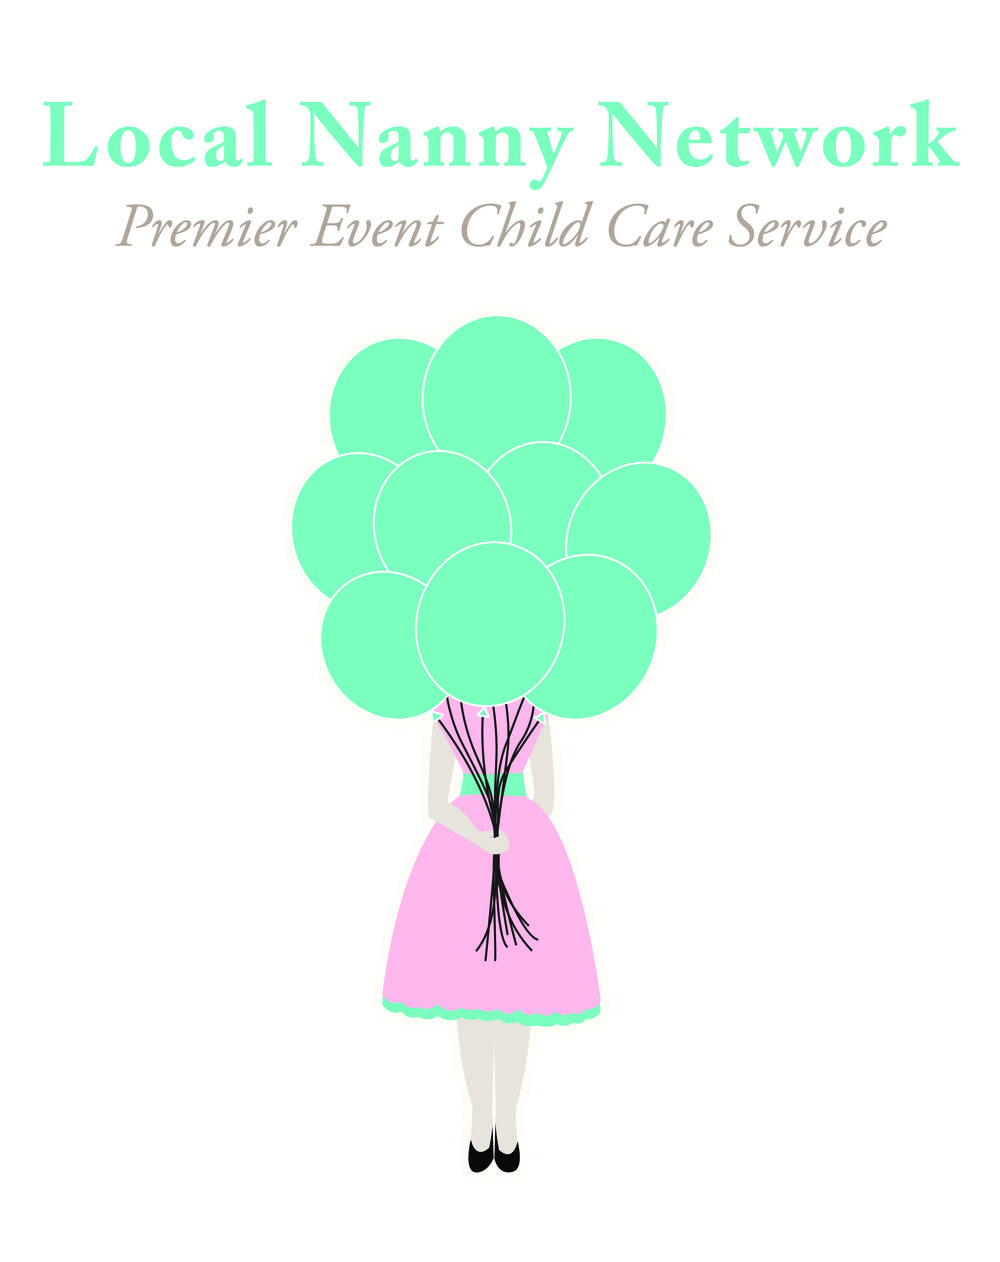 Local Nanny Network Logo.jpg